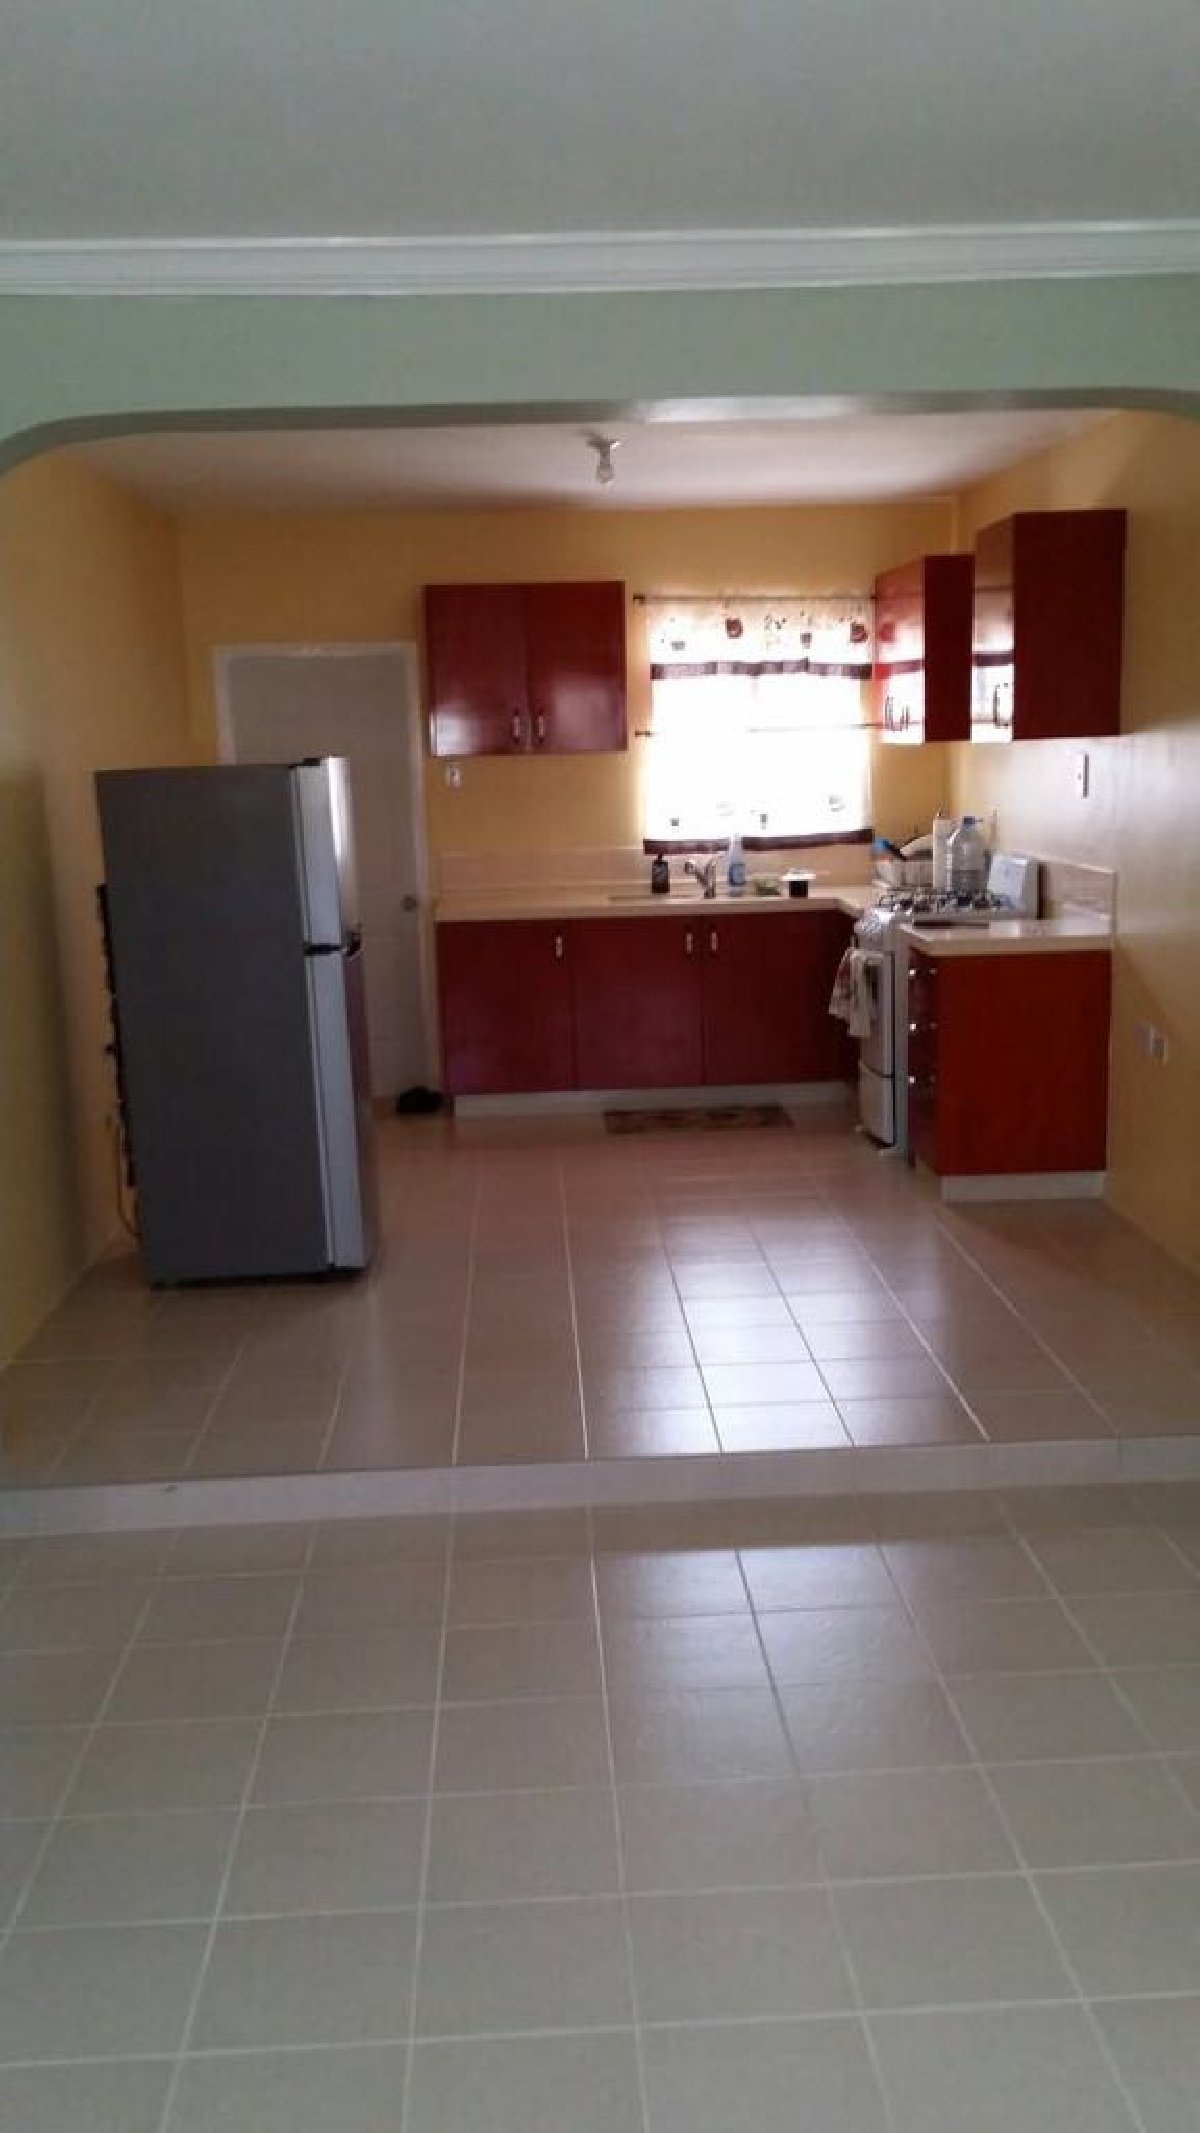 Spacious 2 Bedroom 1 Bathroom House For Rent In Sandhills Vista Hellshire St Catherine Houses